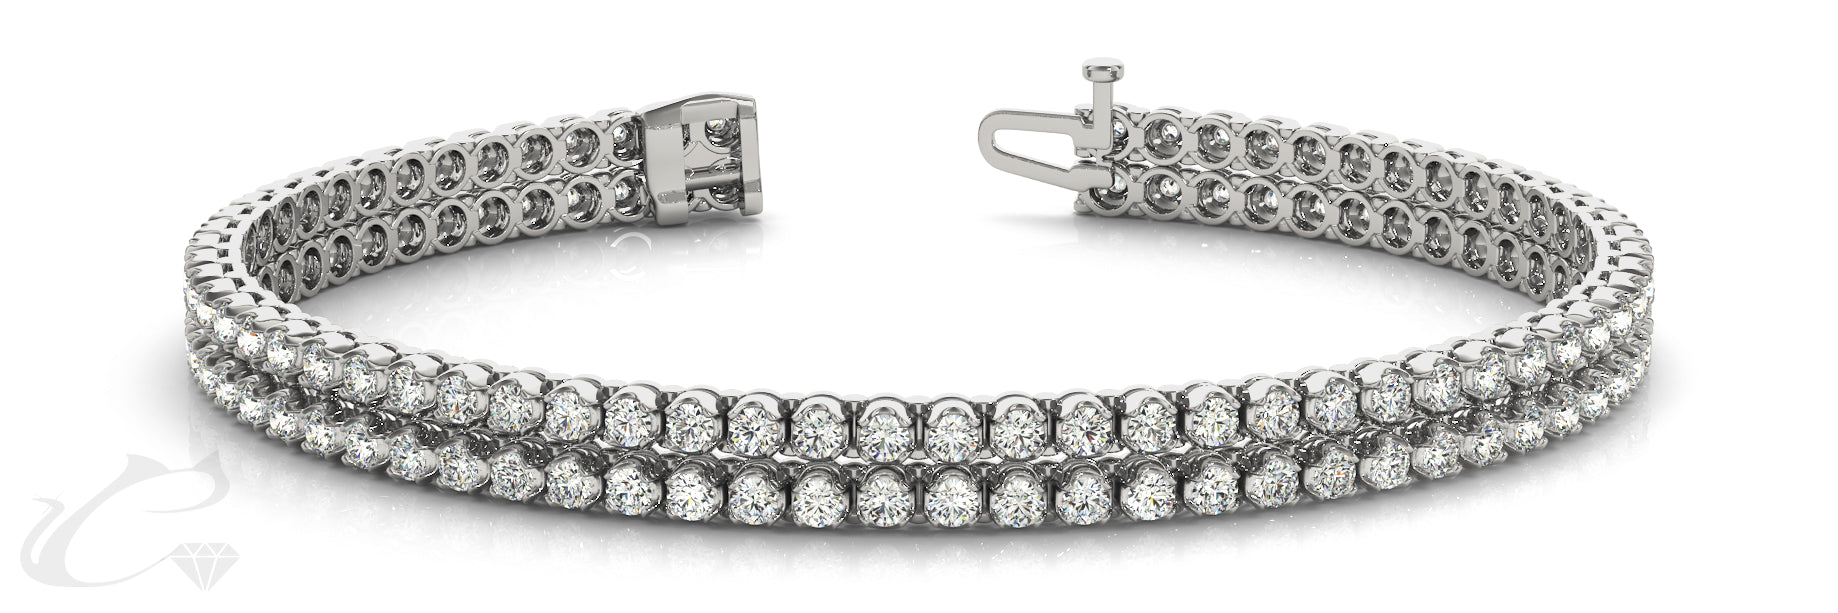 Double Row of Diamonds Tennis Bracelet